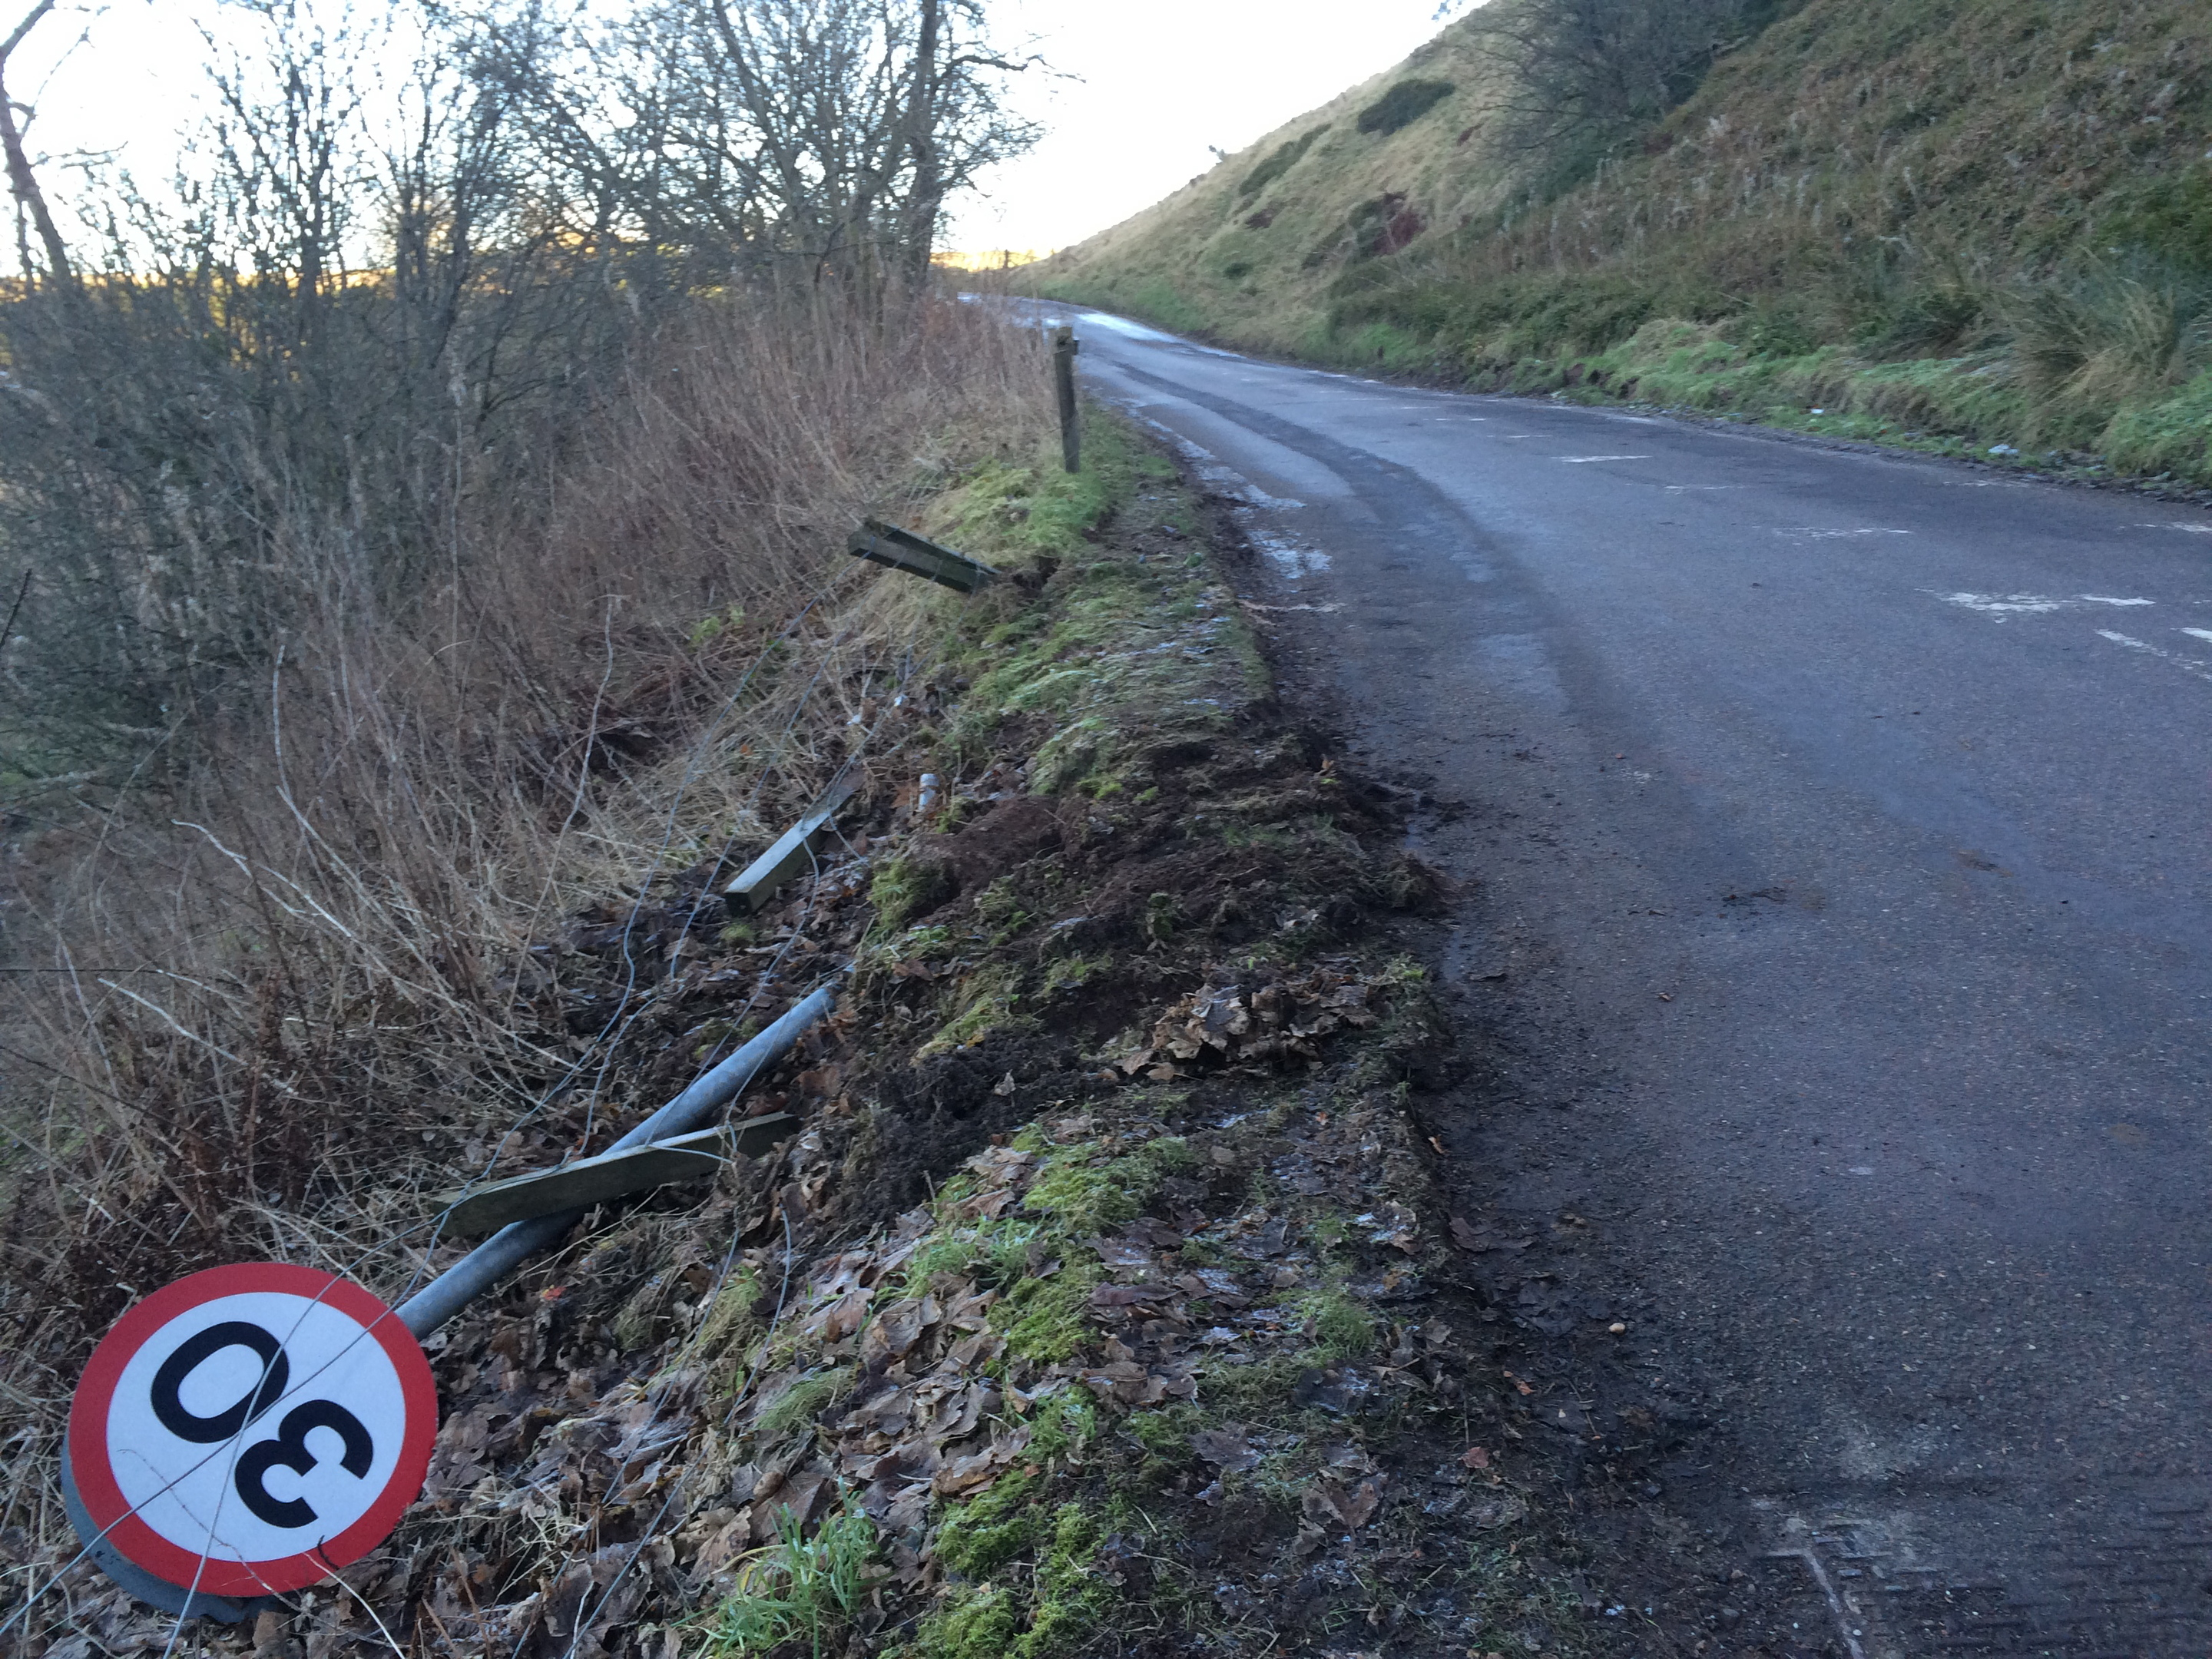 Shirley and Stan Castles' car  hit black ice and smashed into fence posts and a road sign at the entrance to Auchenblae.